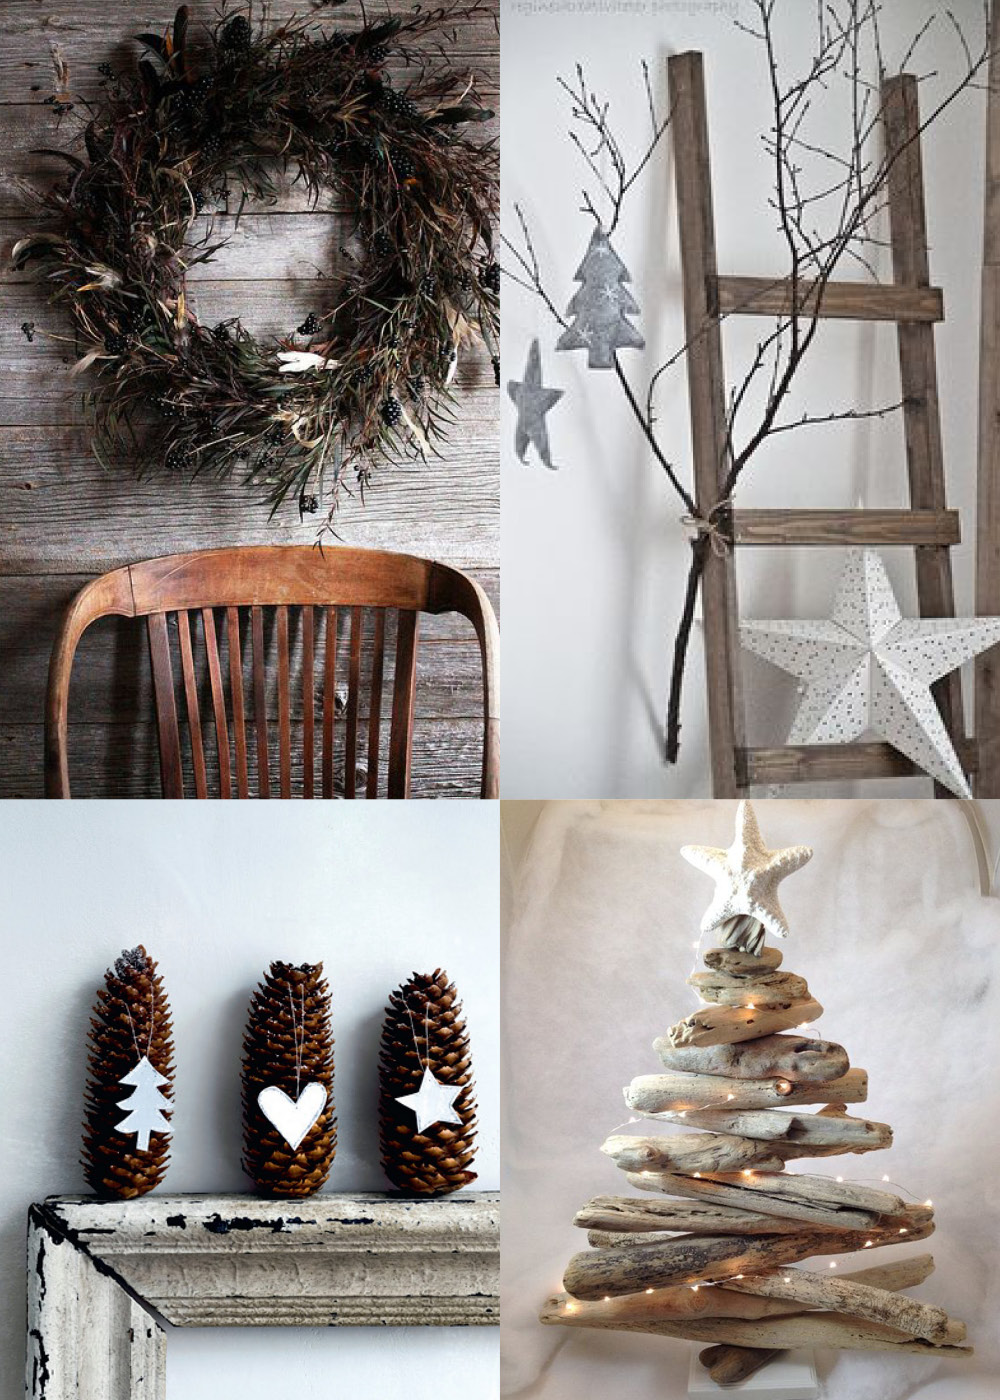 Rustic christmas decorations - Rustic Christmas Decorations Photo 14